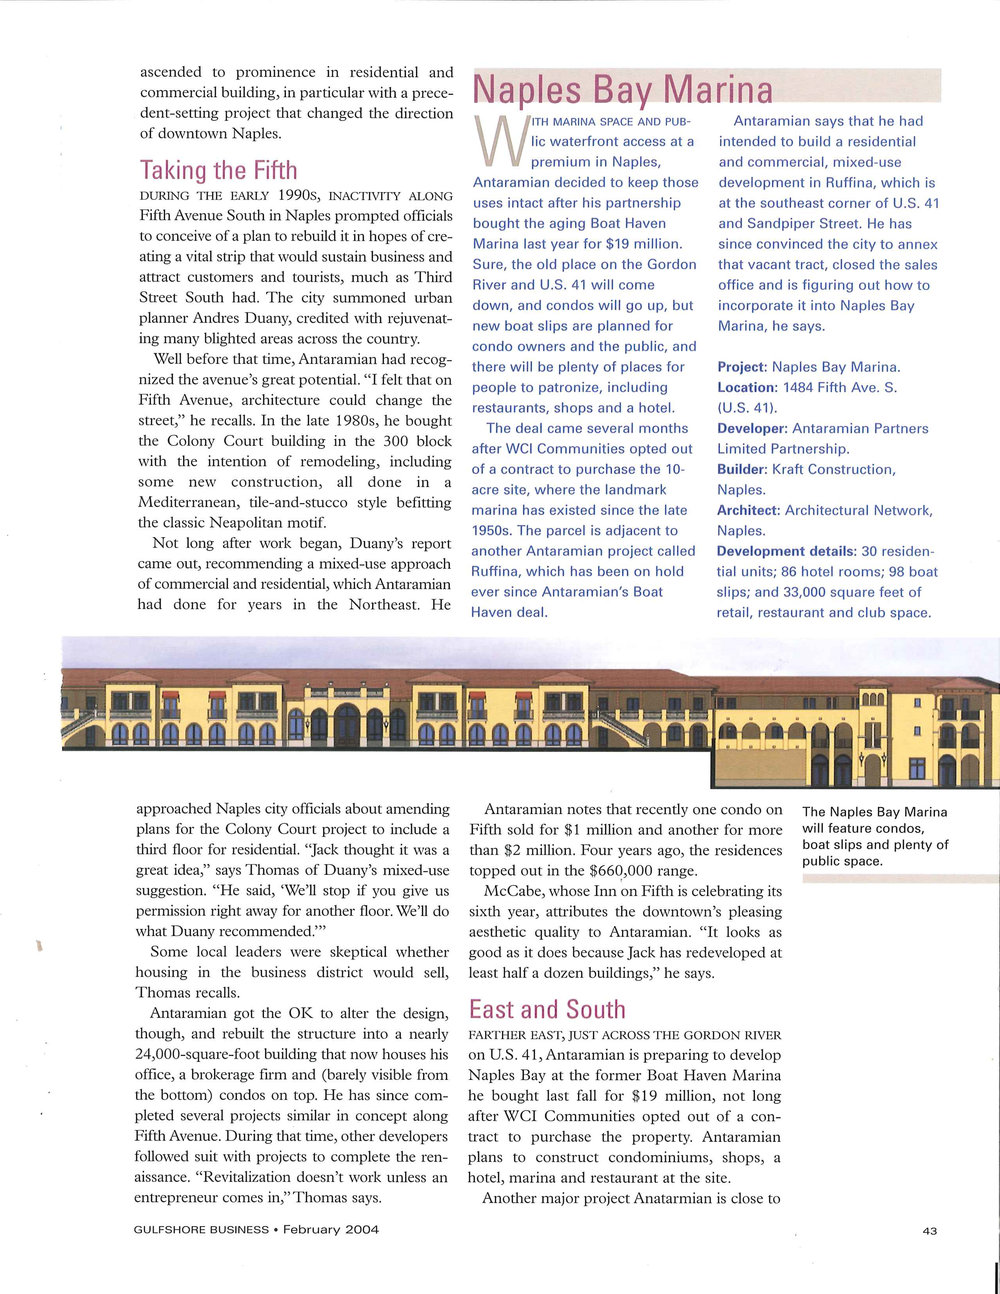 2004-02_Naples Bay Marina_Article.jpg